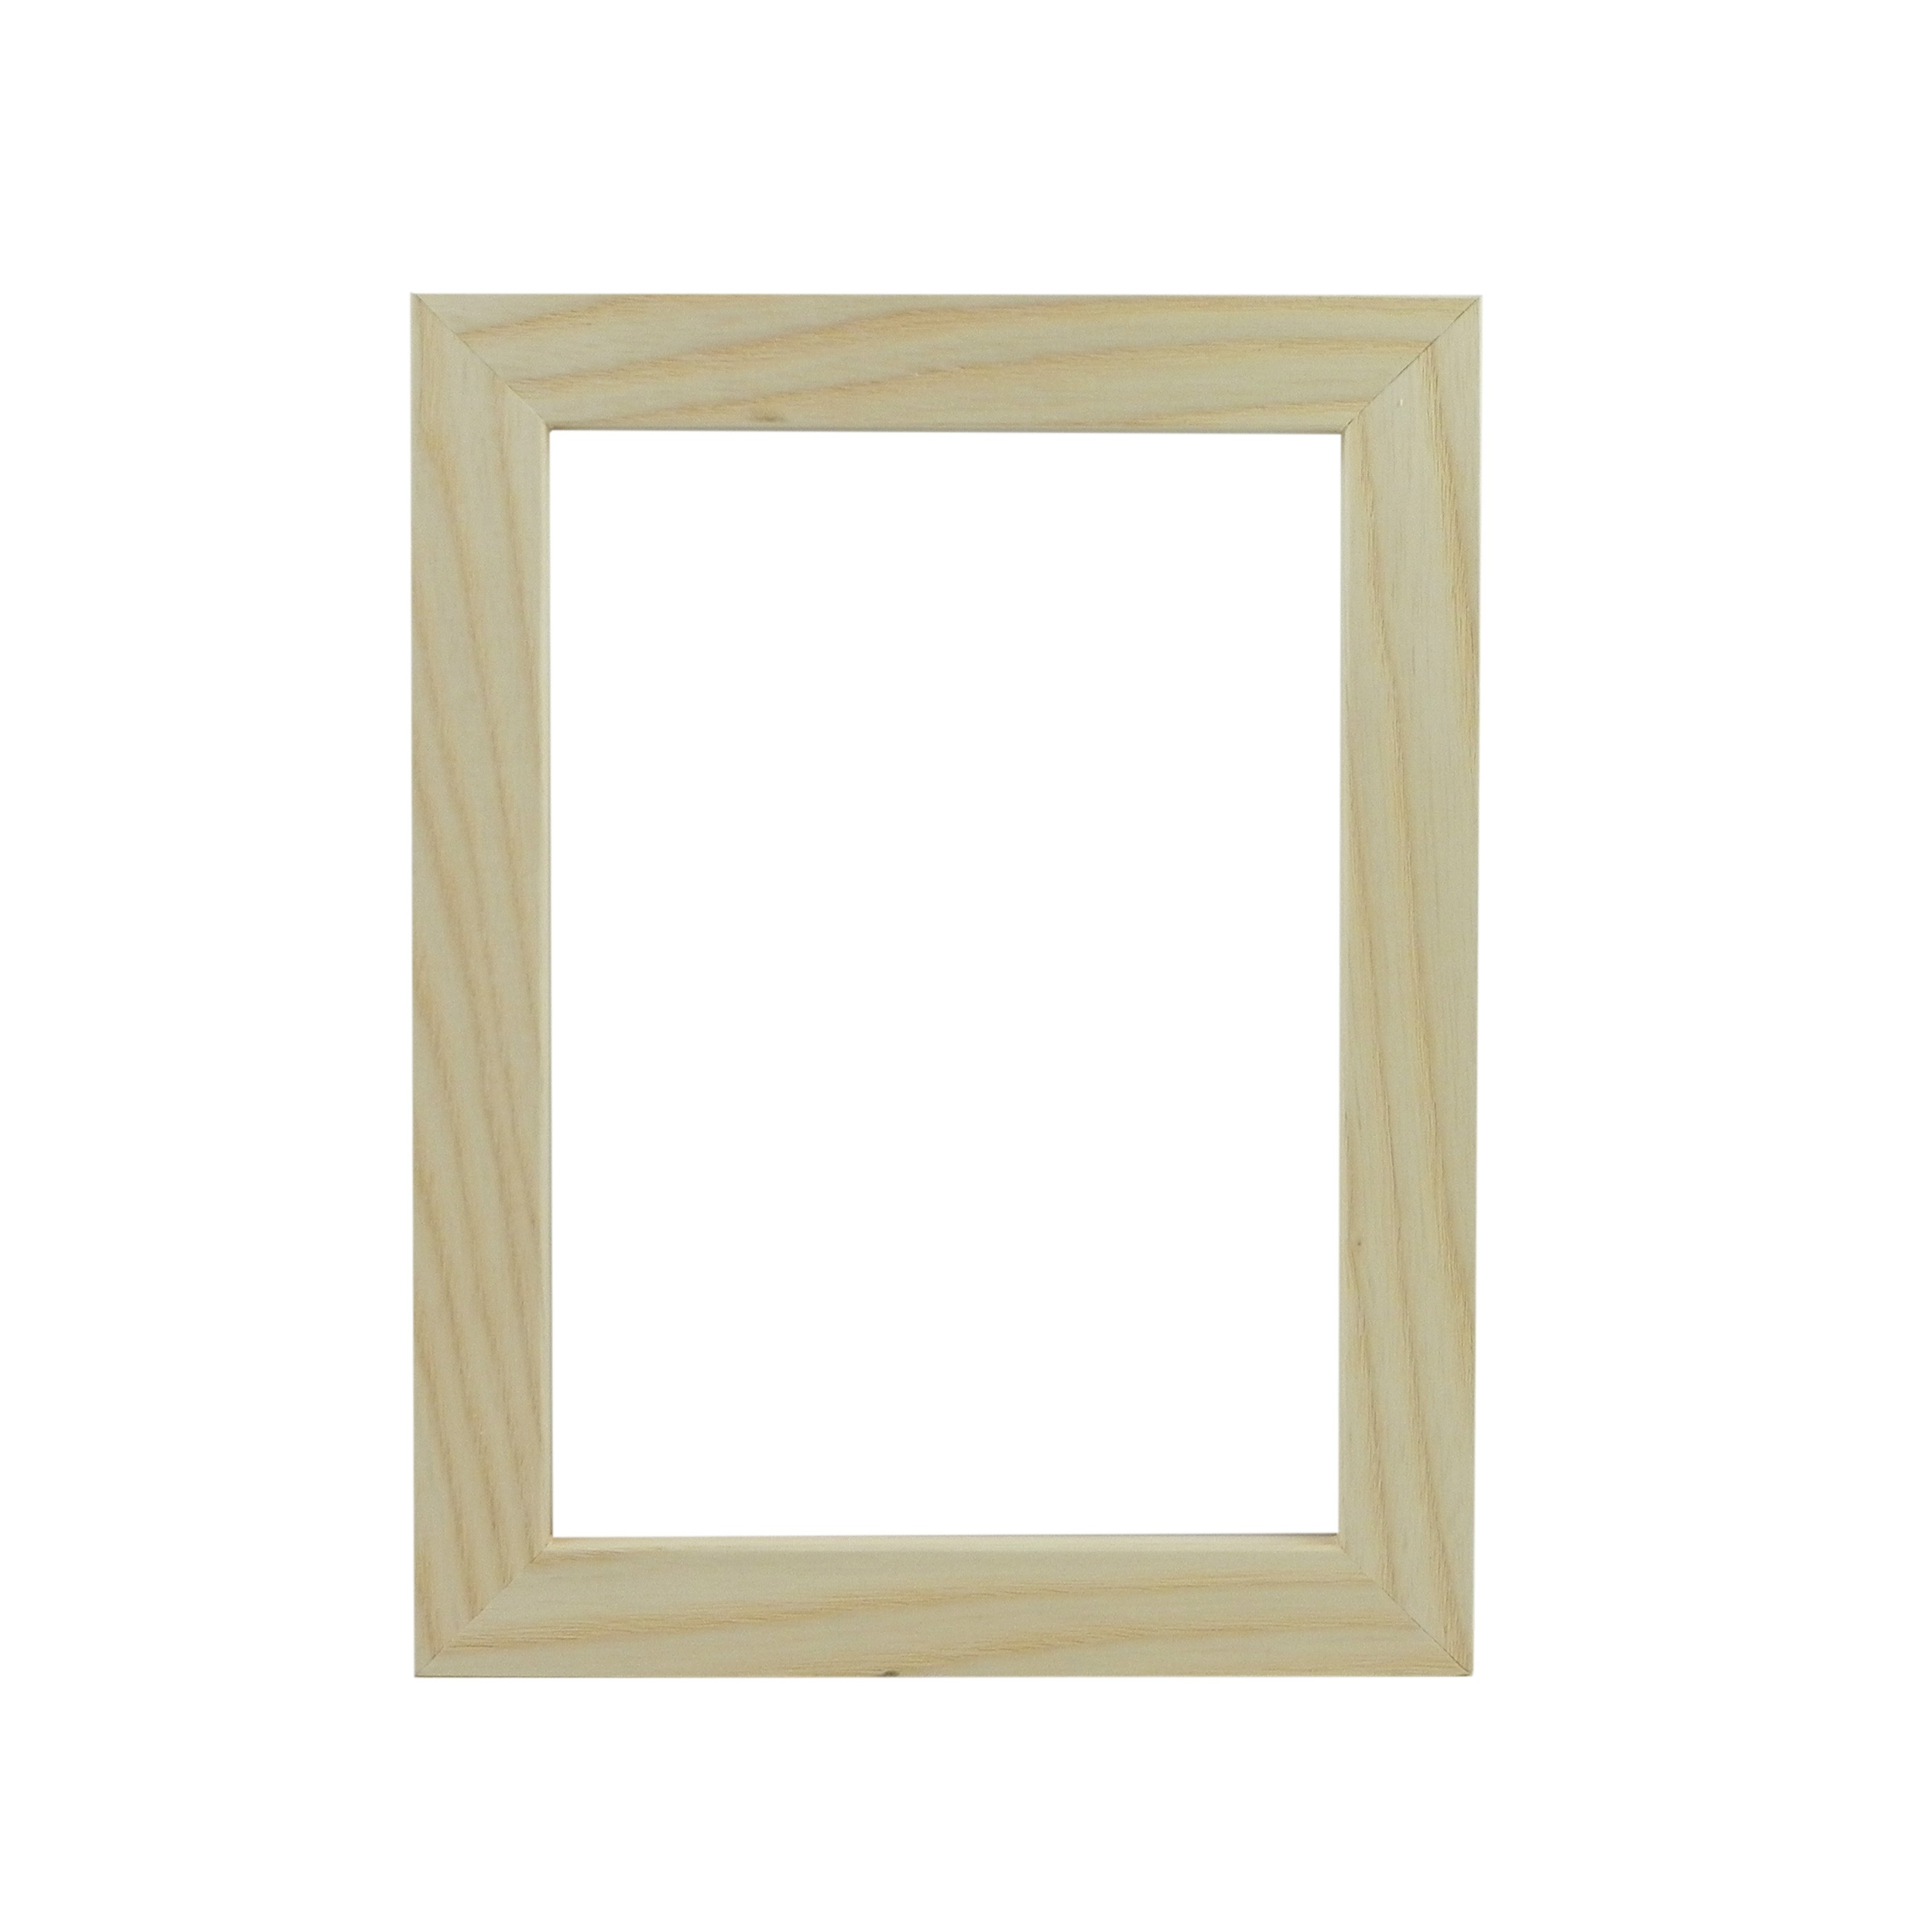 Picture Frame - Flat Ash